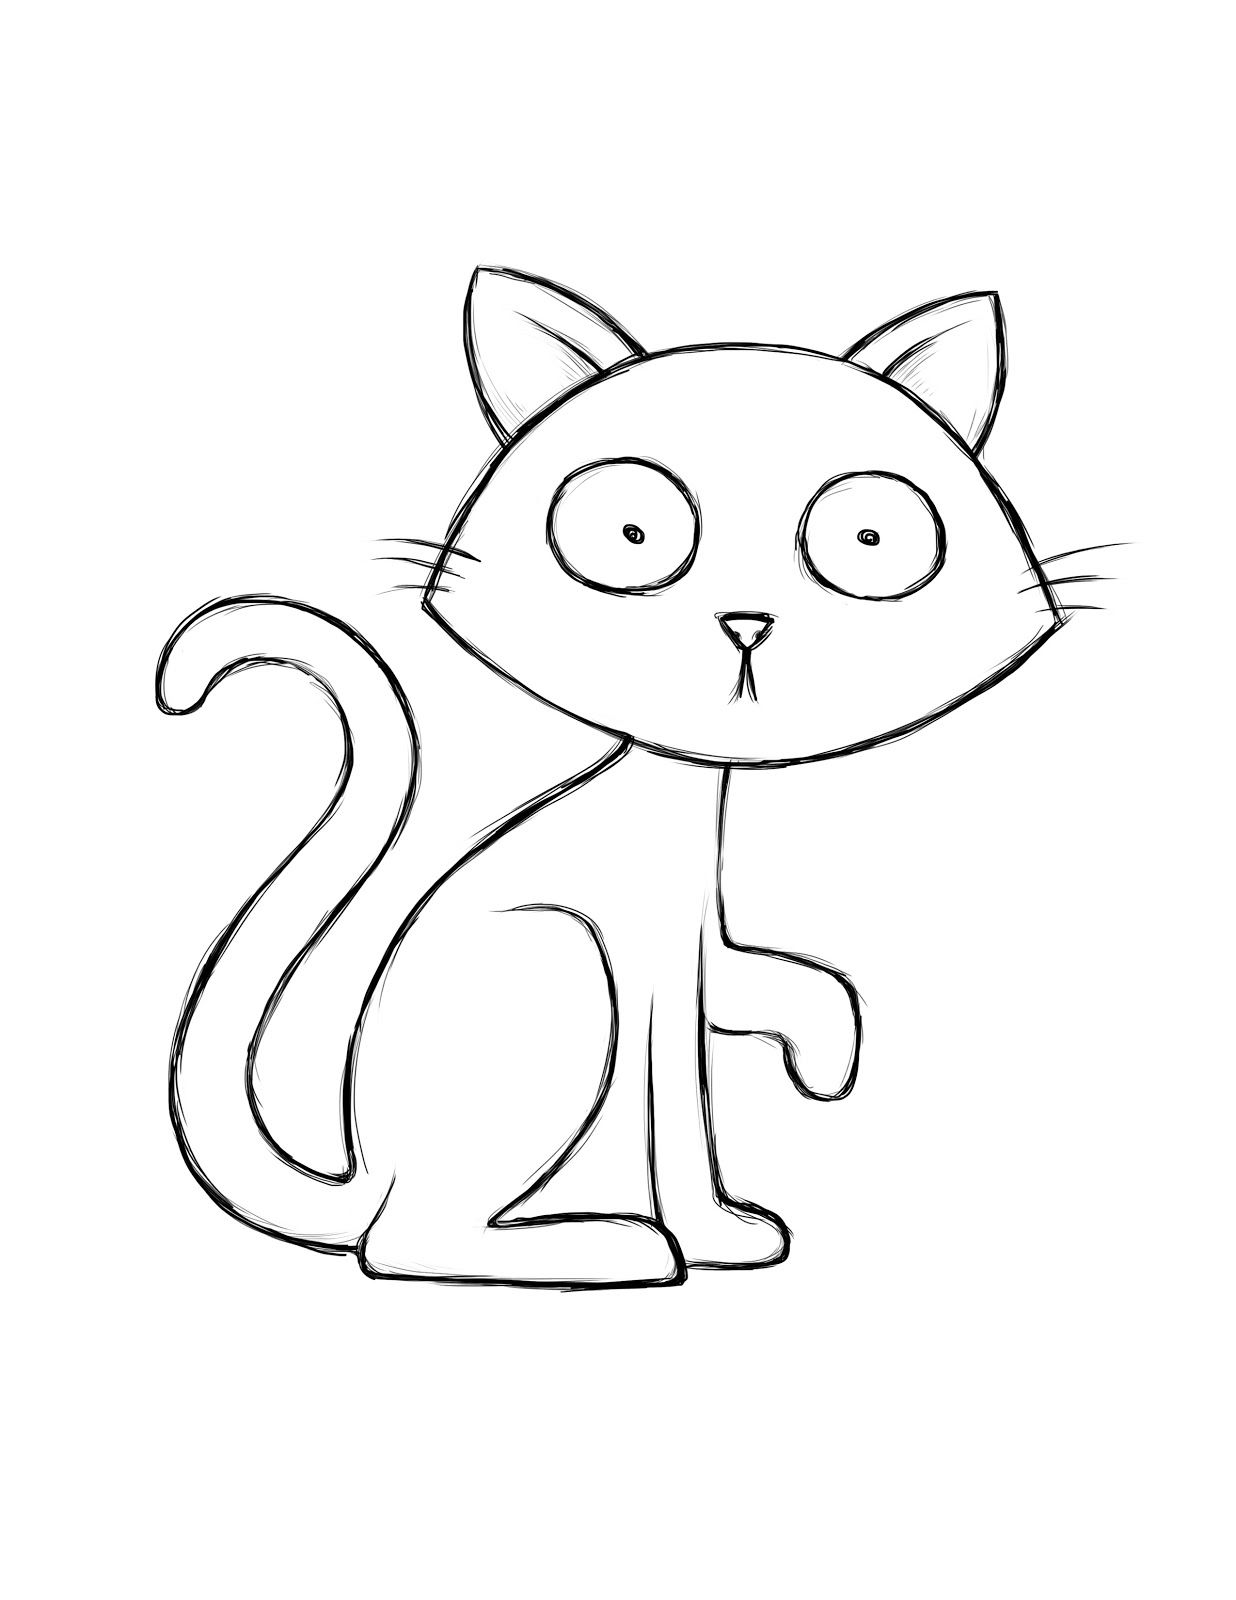 Trying To Find Best Activity For Your Kid That Can Interest Or Help Build Skills Here Are 10 Free And Printable Halloween Cat Coloring Pages Kids